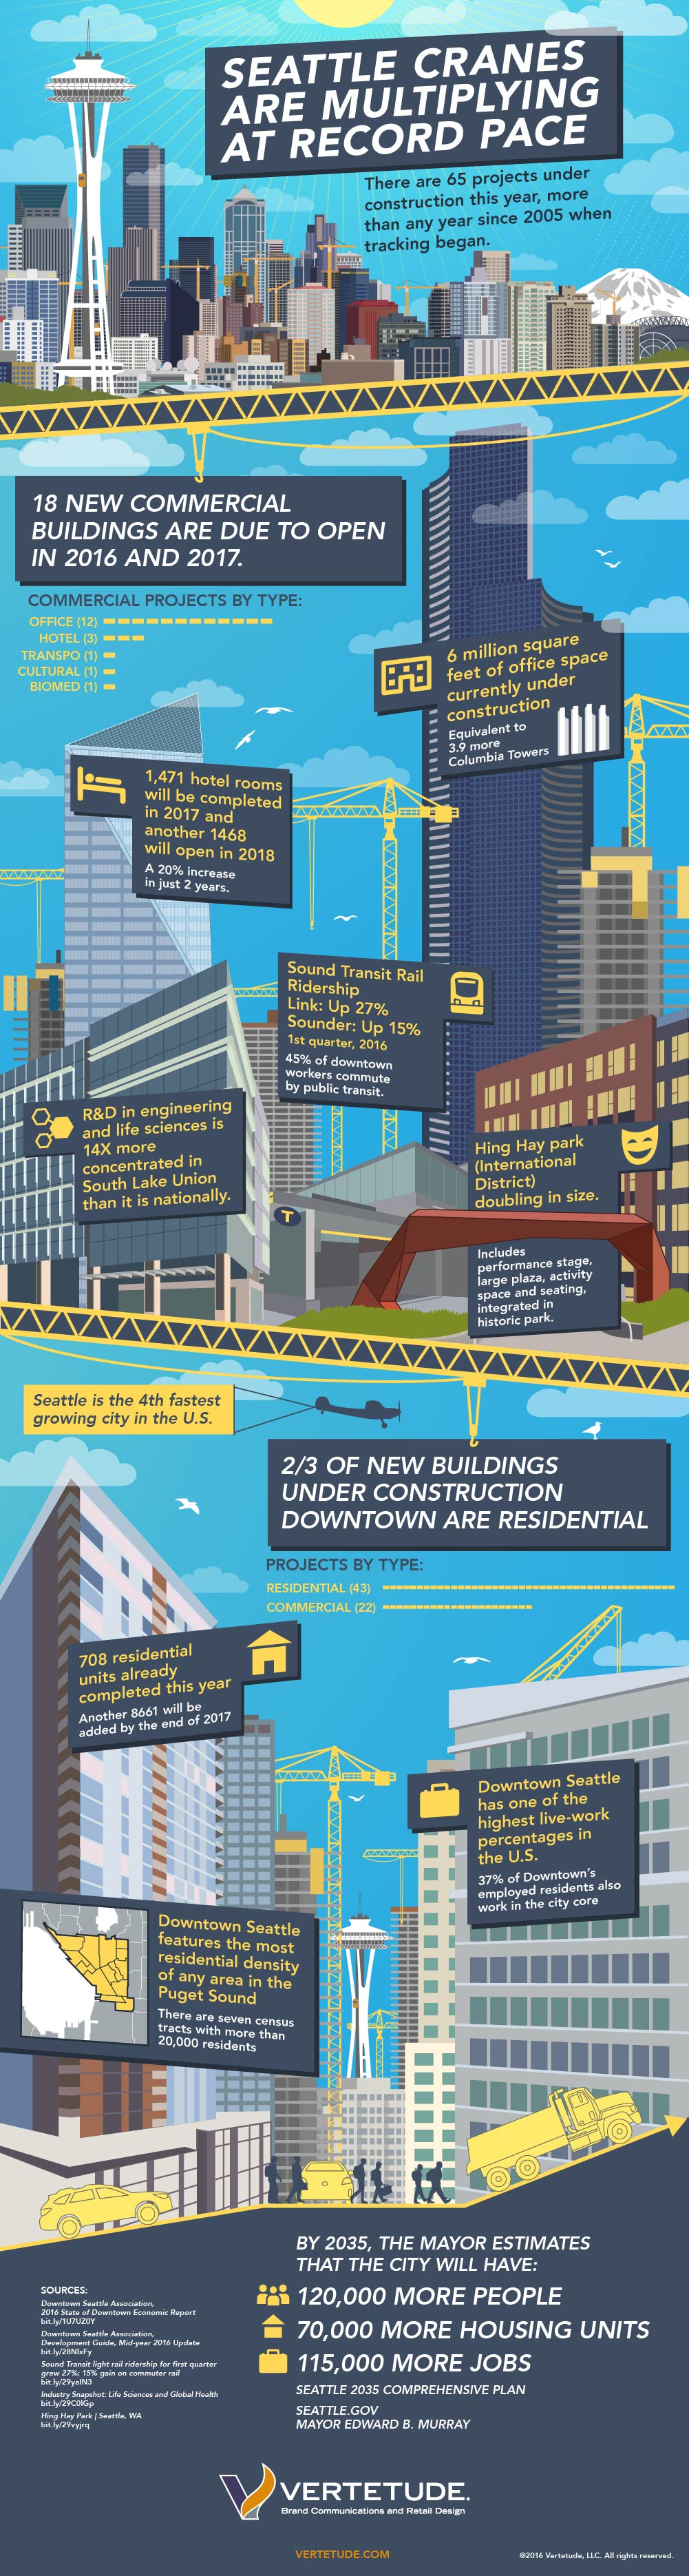 Downtown Seattle growth and construction infographic poster